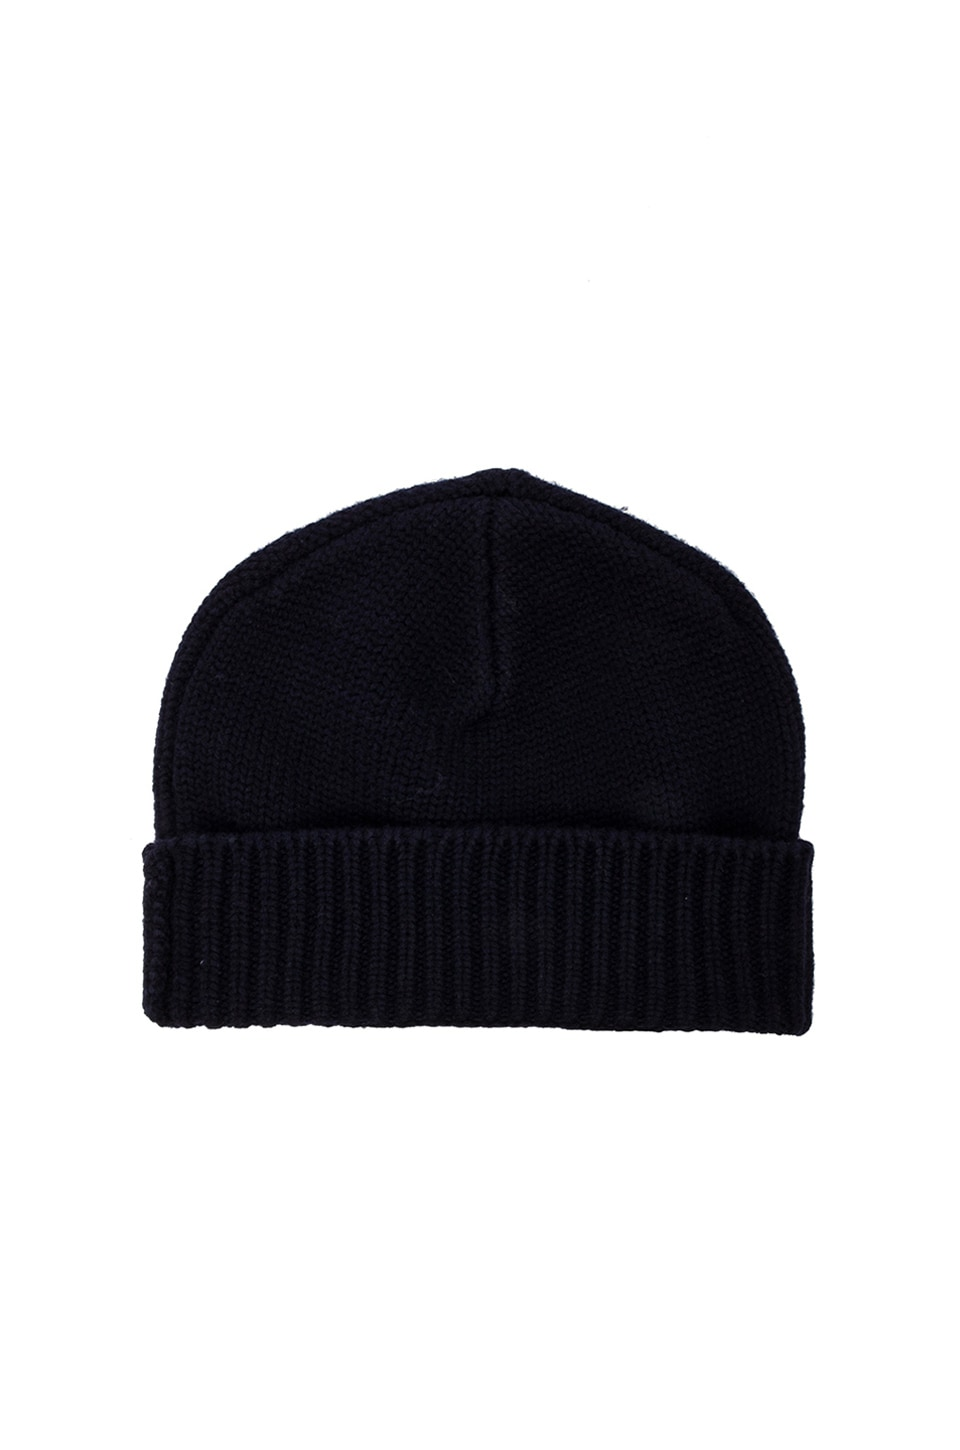 Gents Co. Beanie in Navy